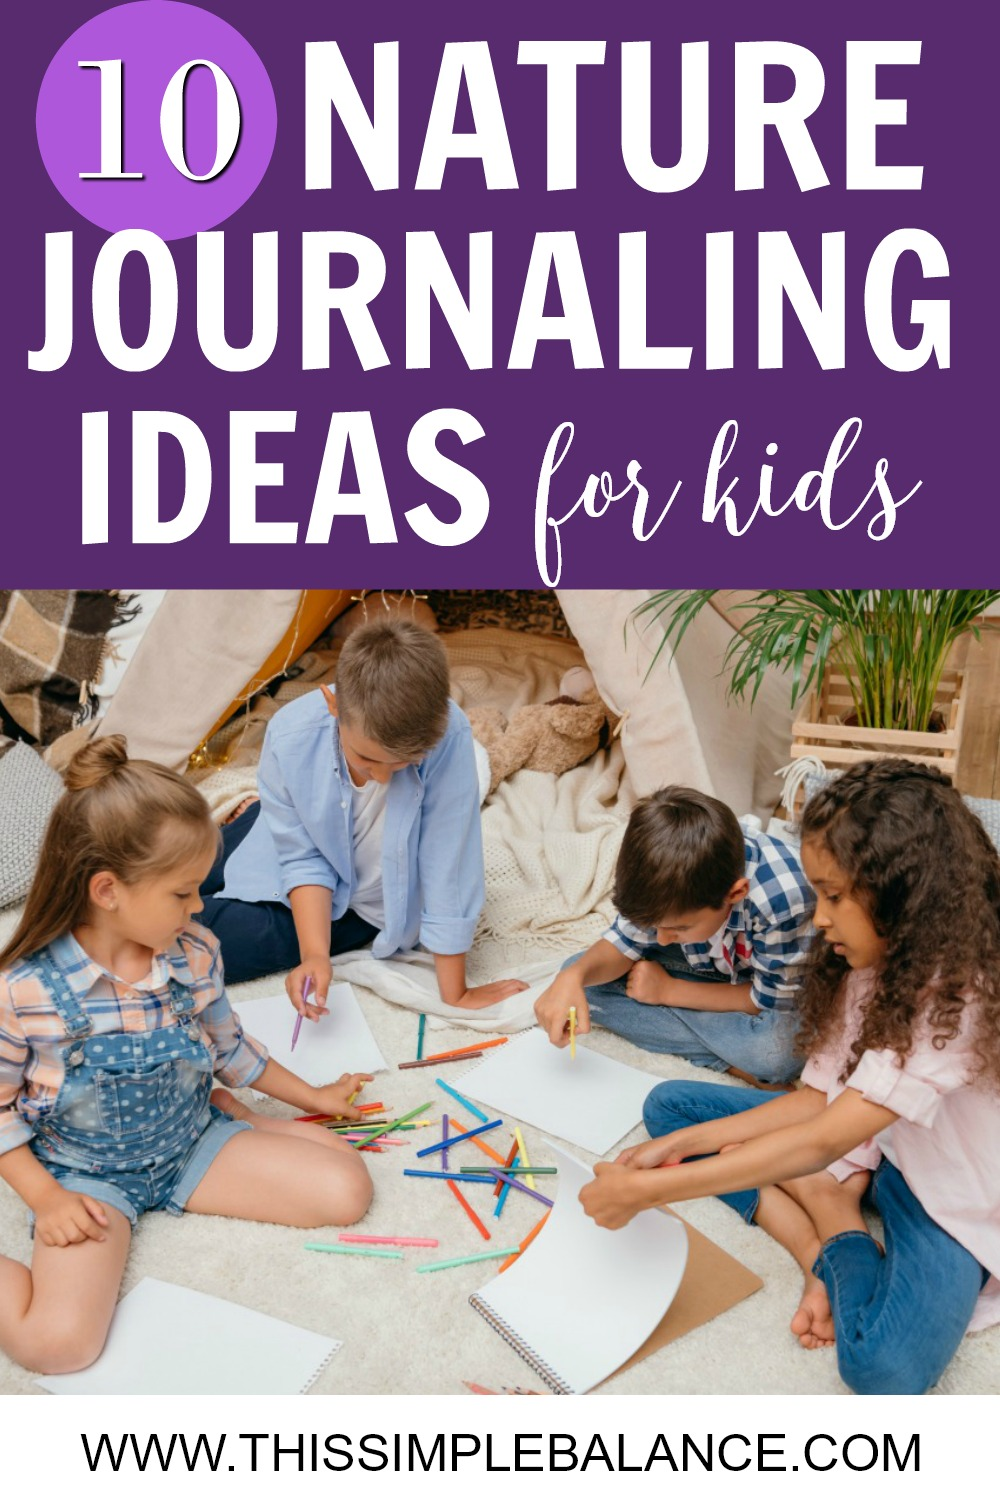 Nature Journaling Ideas for Kids: Use these 10 ideas to change things up and peak your child's interest in nature journaling (especially when he isn't that excited about it).